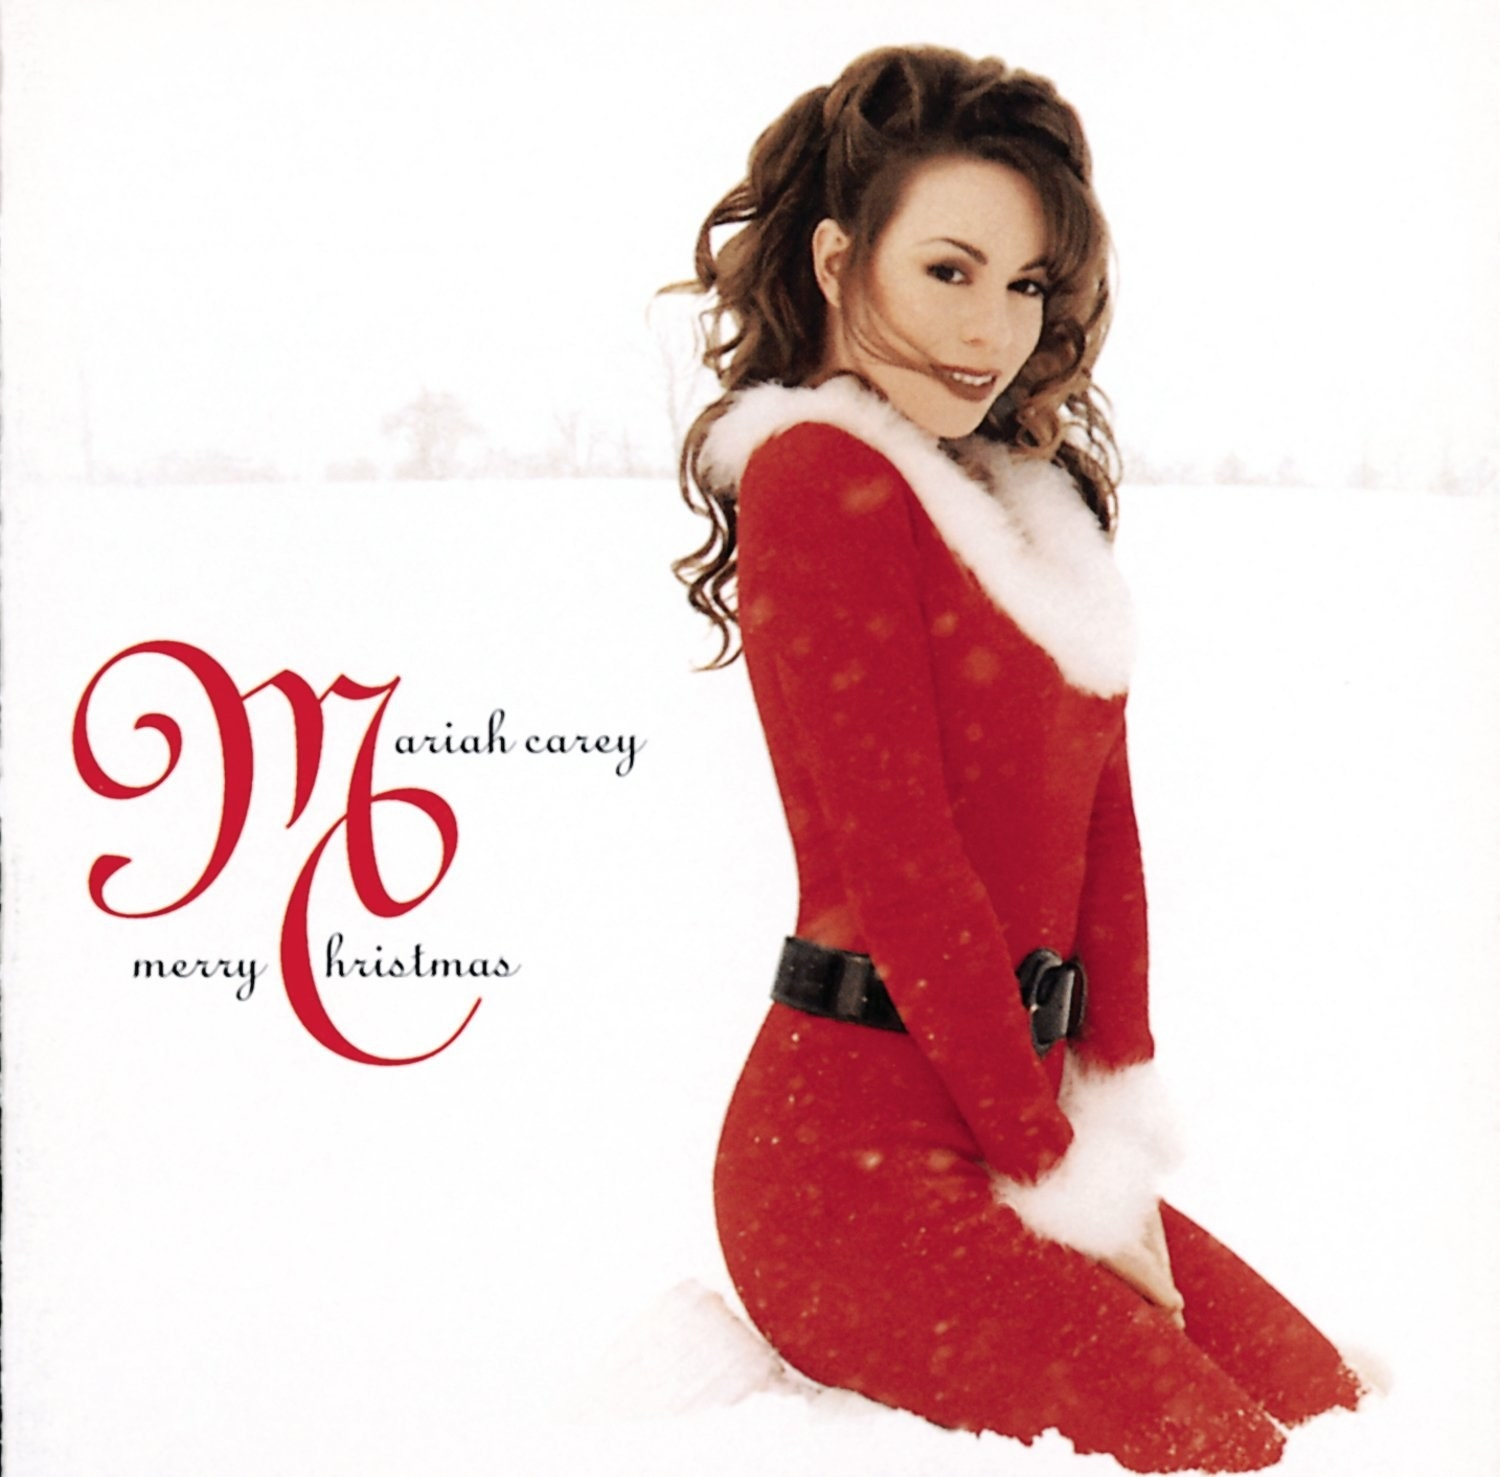 album cover of Merry Christmas showing Mariah Carey in a red jumpsuit lined with white fur kneeling in the snow